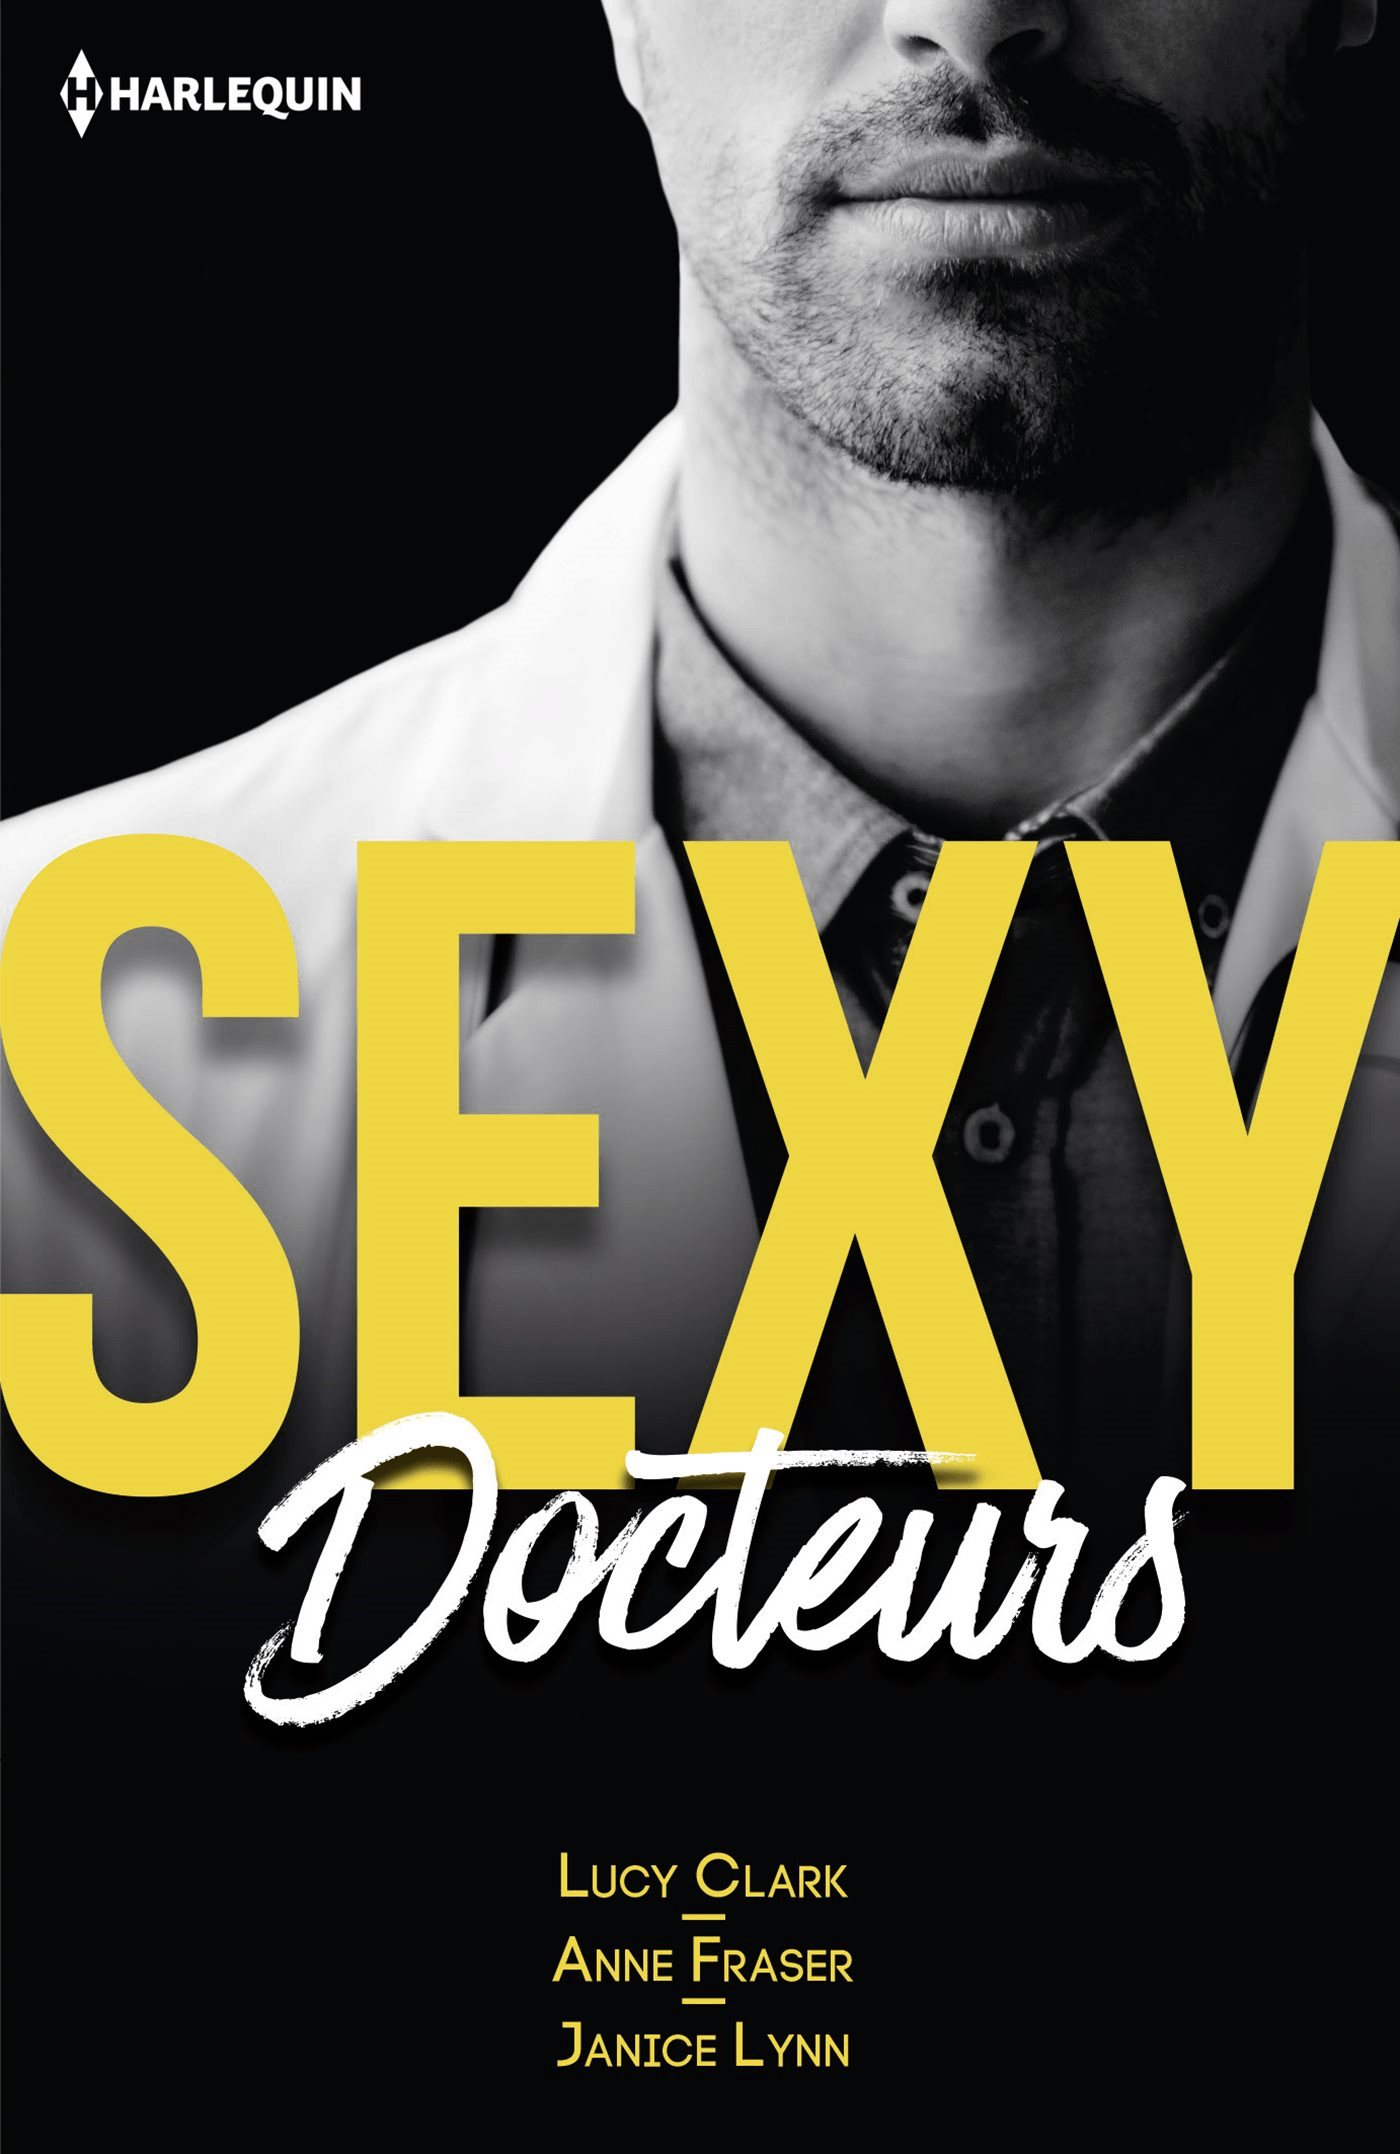 Couverture : Lucy Clark, Sexy et… Scandaleux, Harlequin